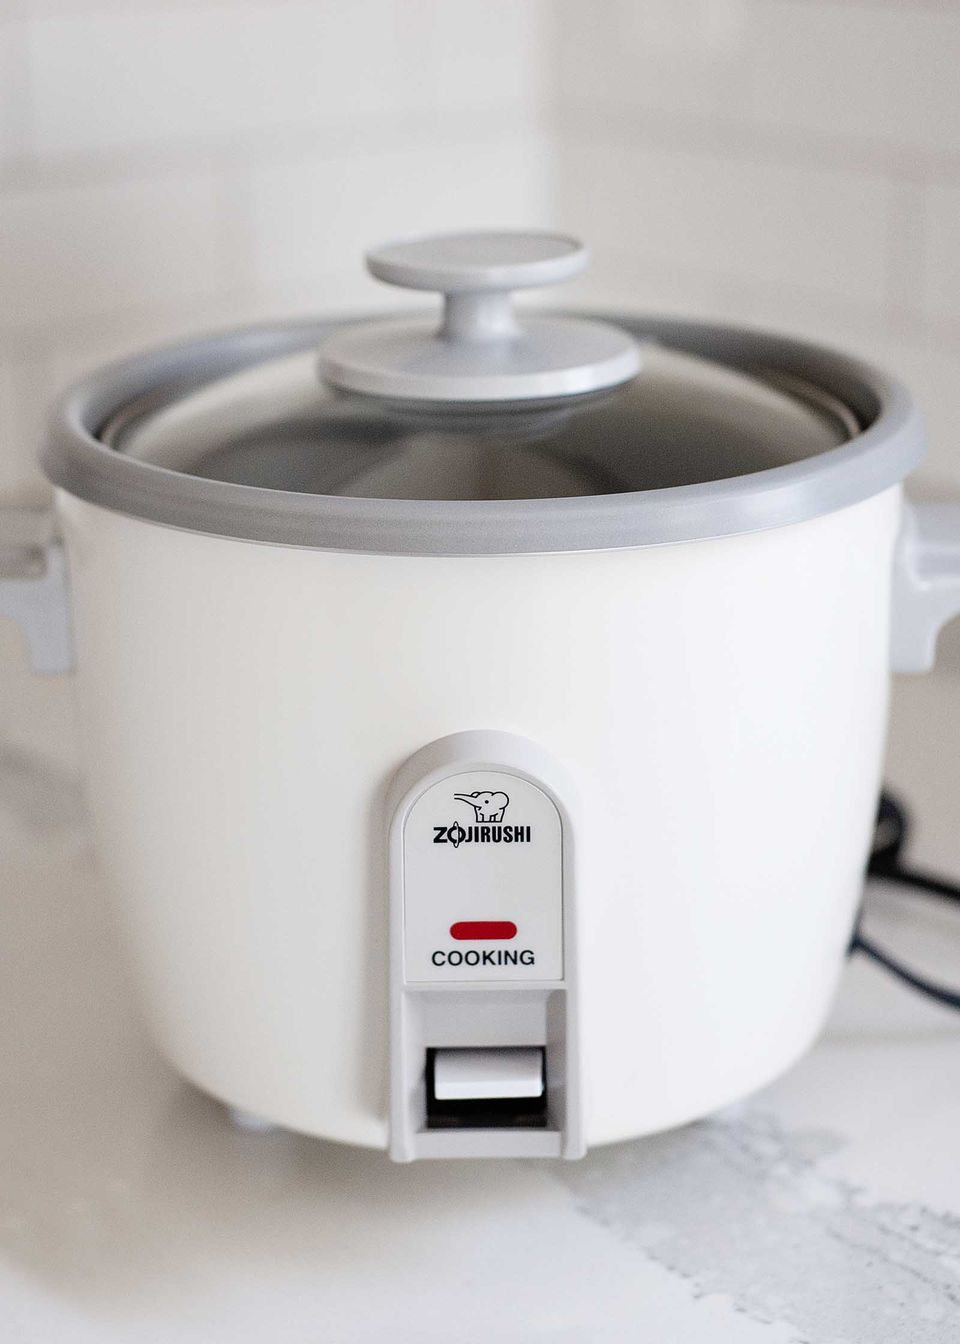 Side view of a Zojirushi rice cooker on a white countertop.